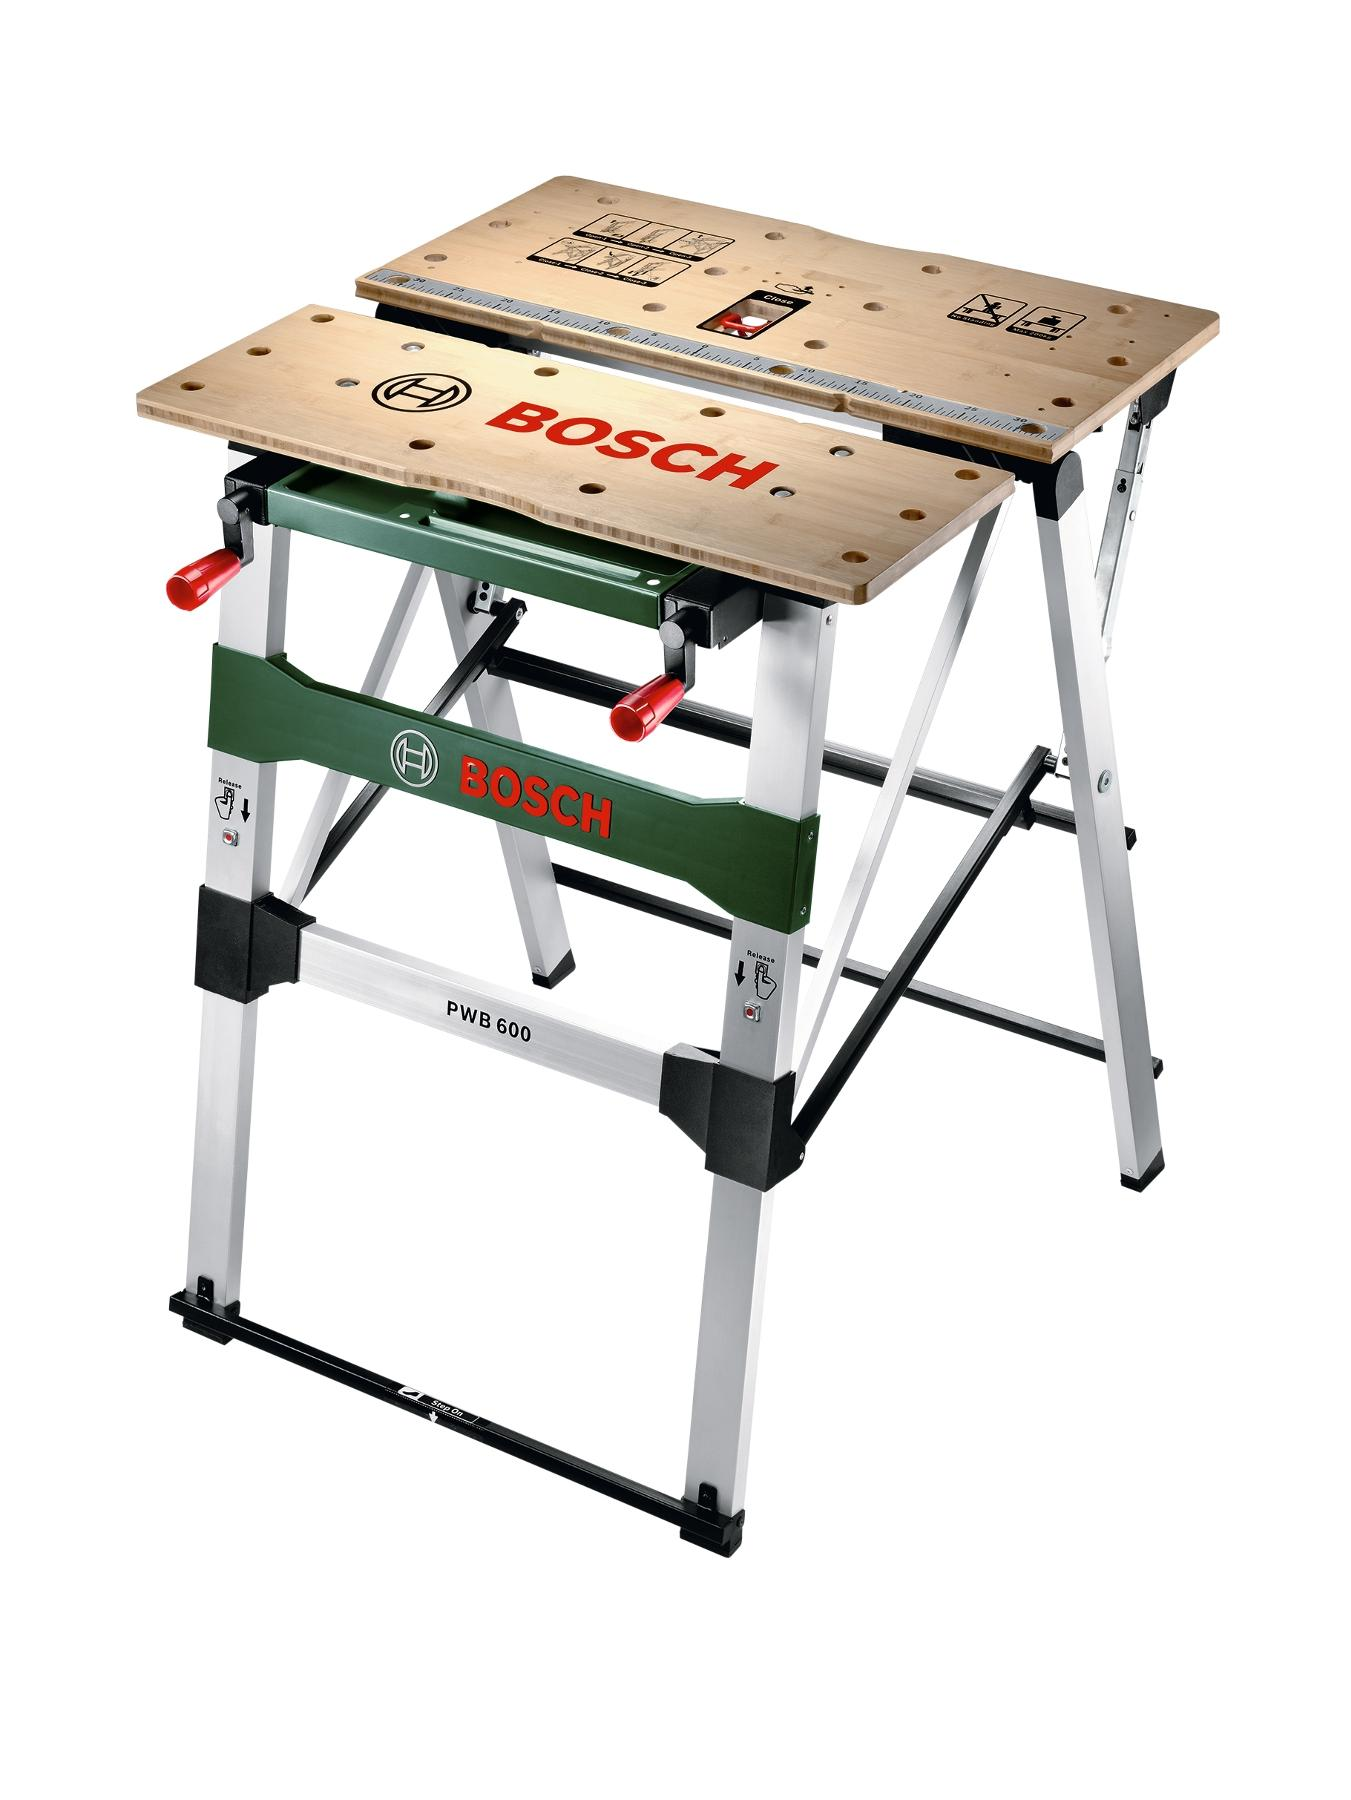 PWB 600 Work Bench